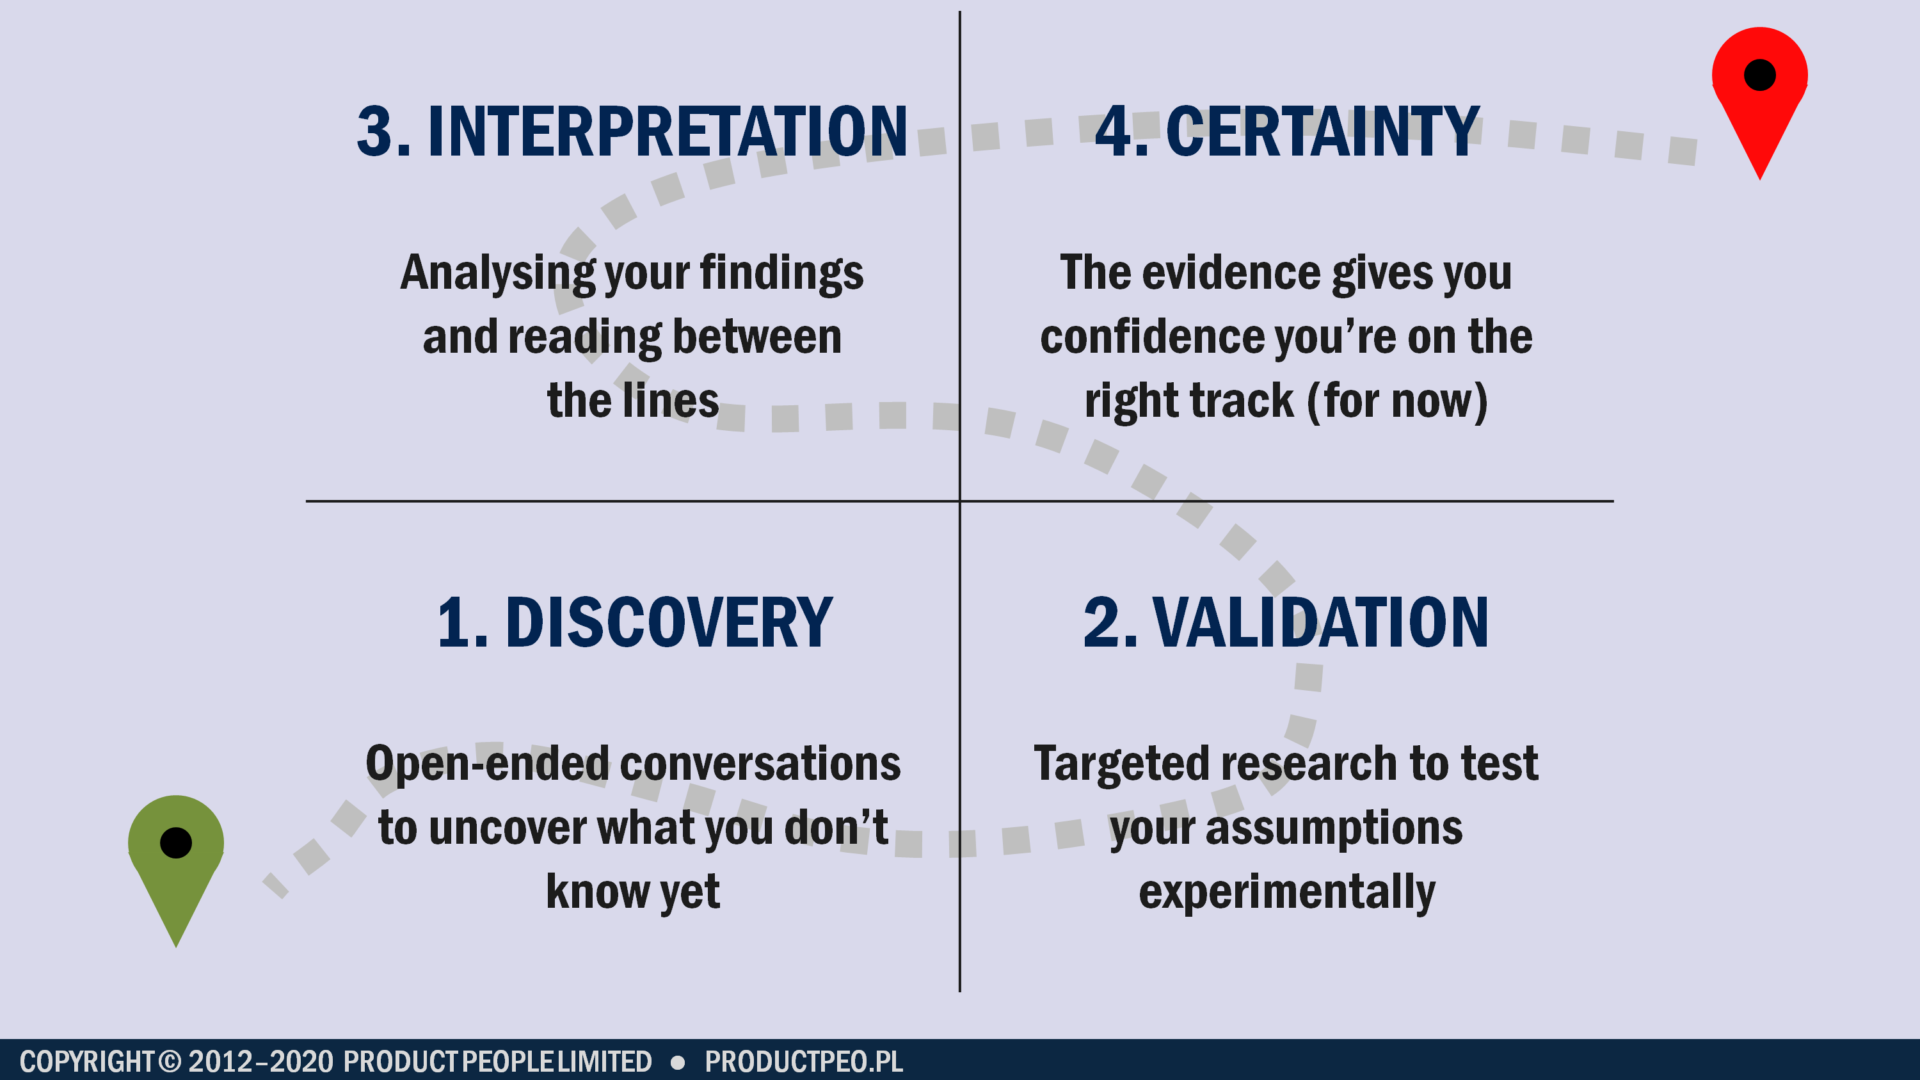 The path to knowledge and certainty in four steps: discovery, validation, interpretation and certainty (Credit: Jock Busuttil / Product People Limited)